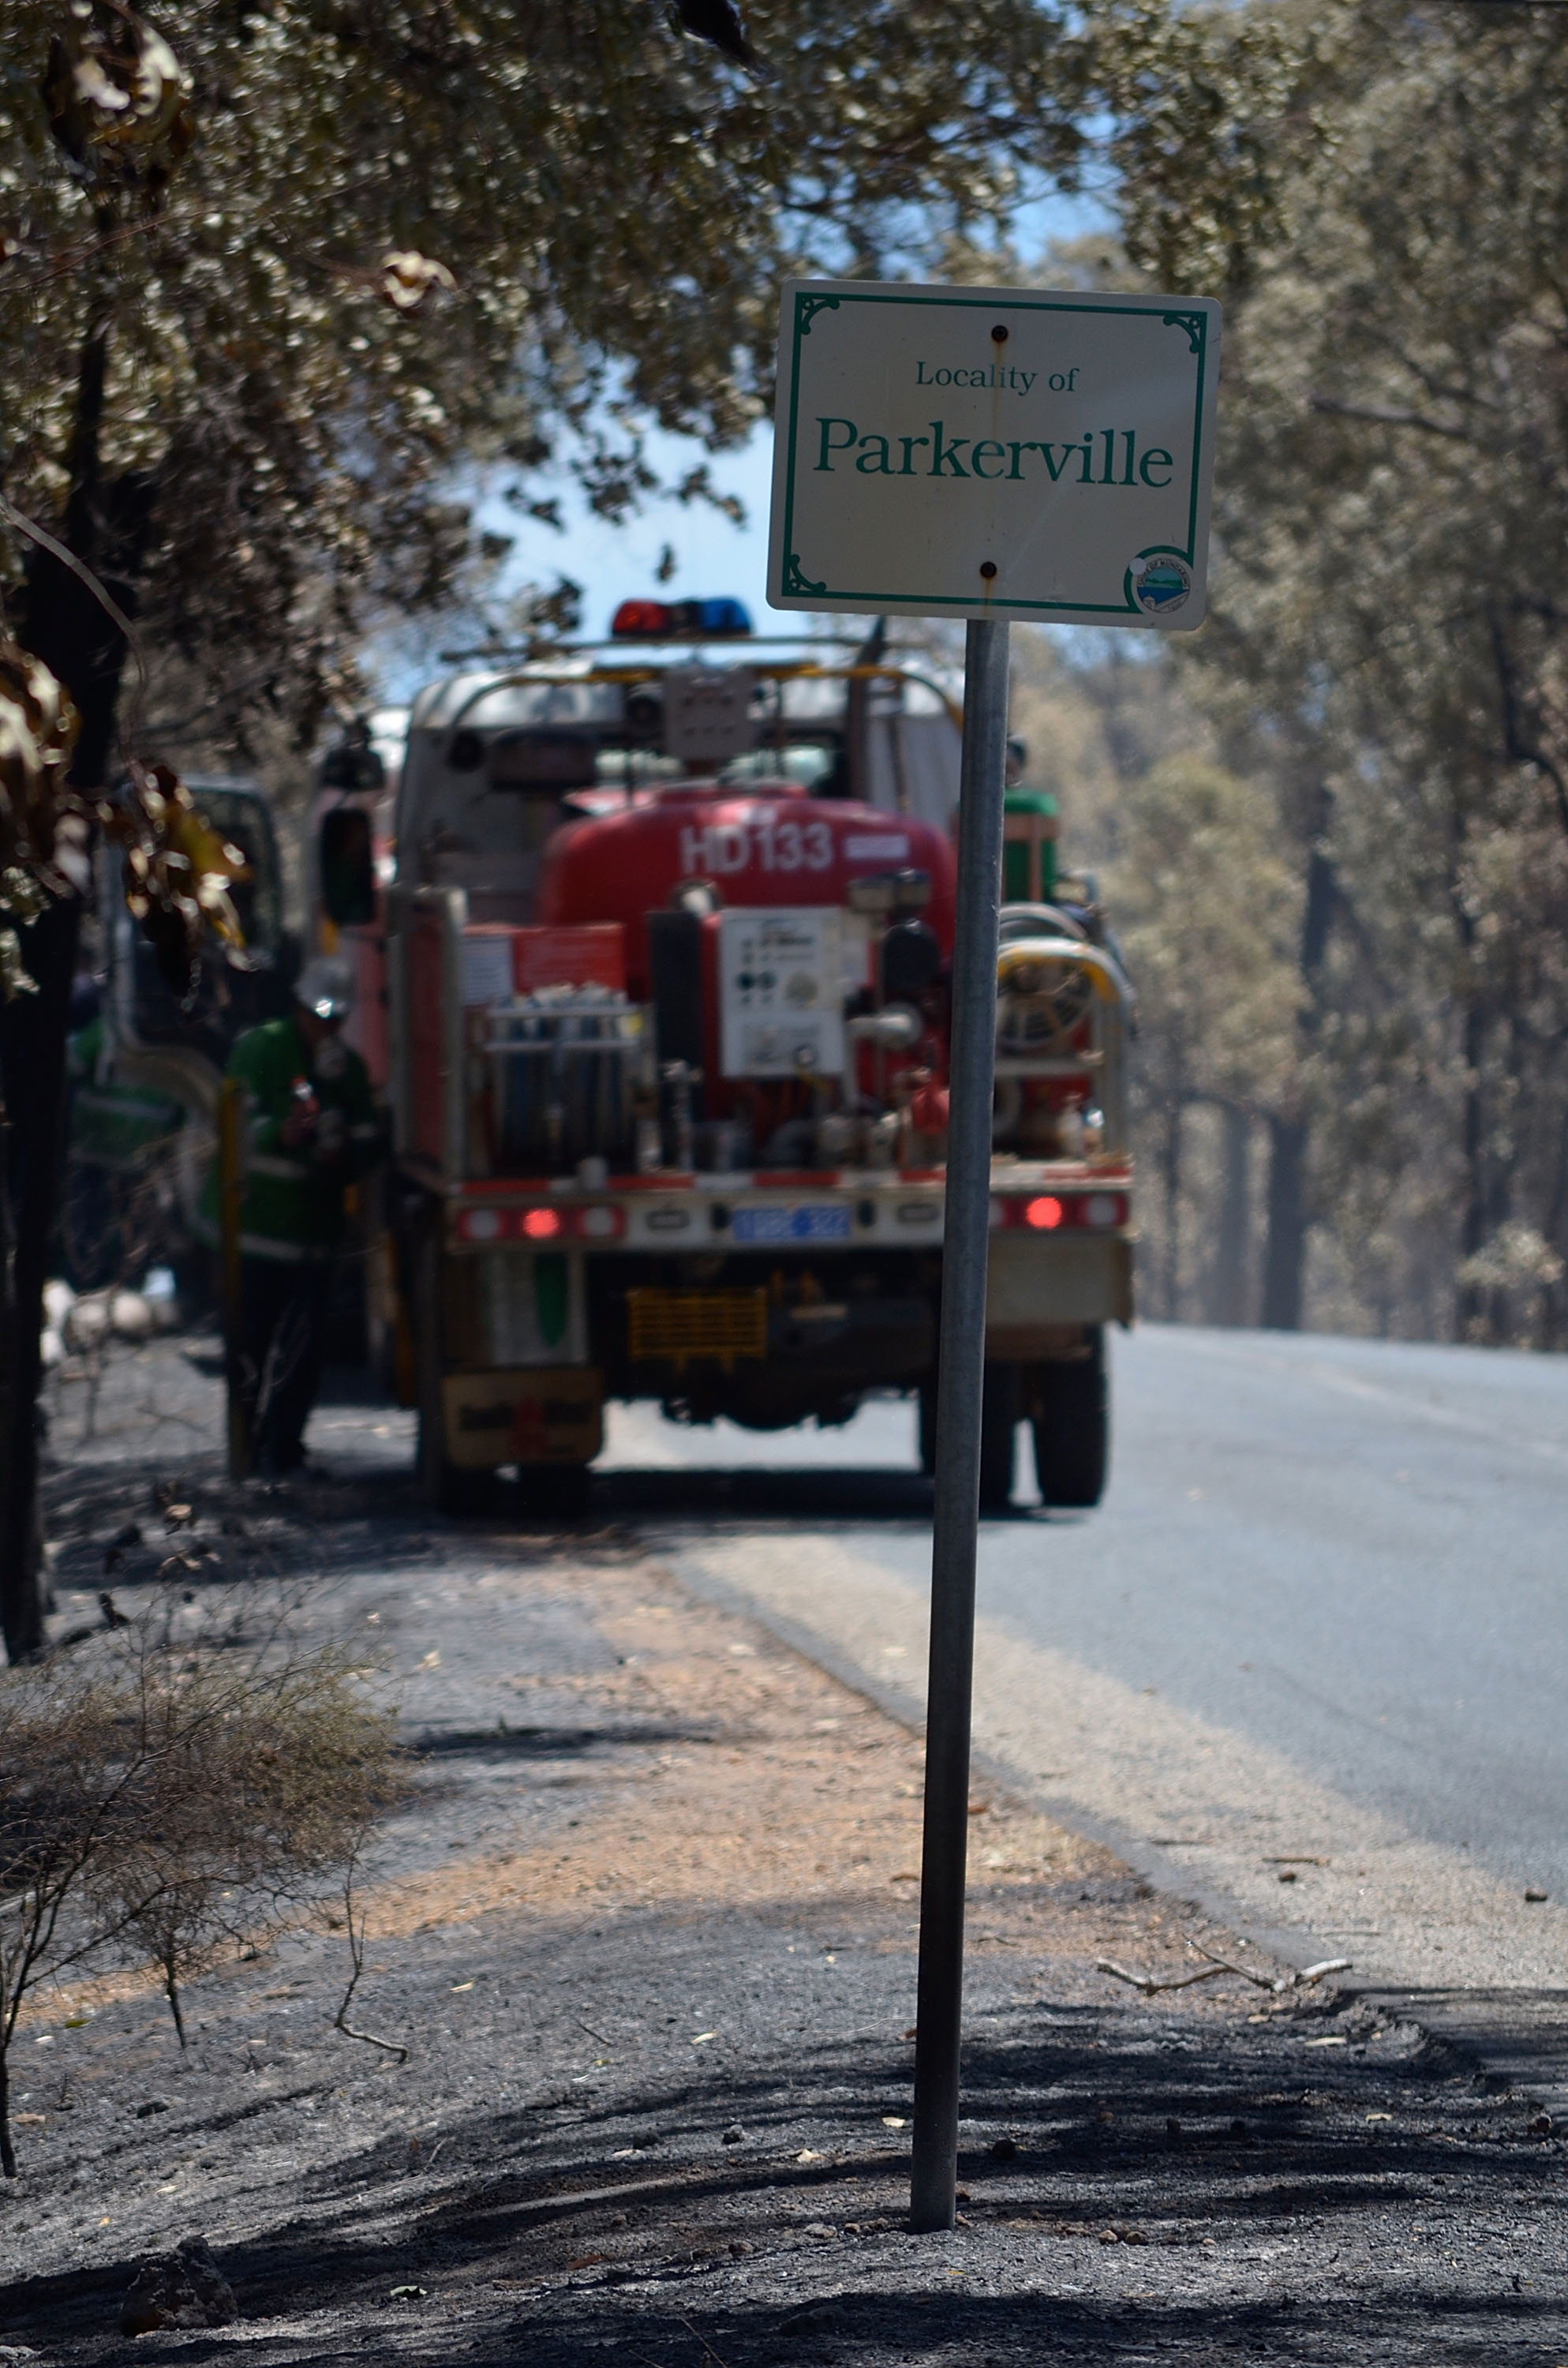 In this handout photo provided by DFES, A fire truck is parked on the roadside in Parkerville in Perth's hills on January 13, 2014.